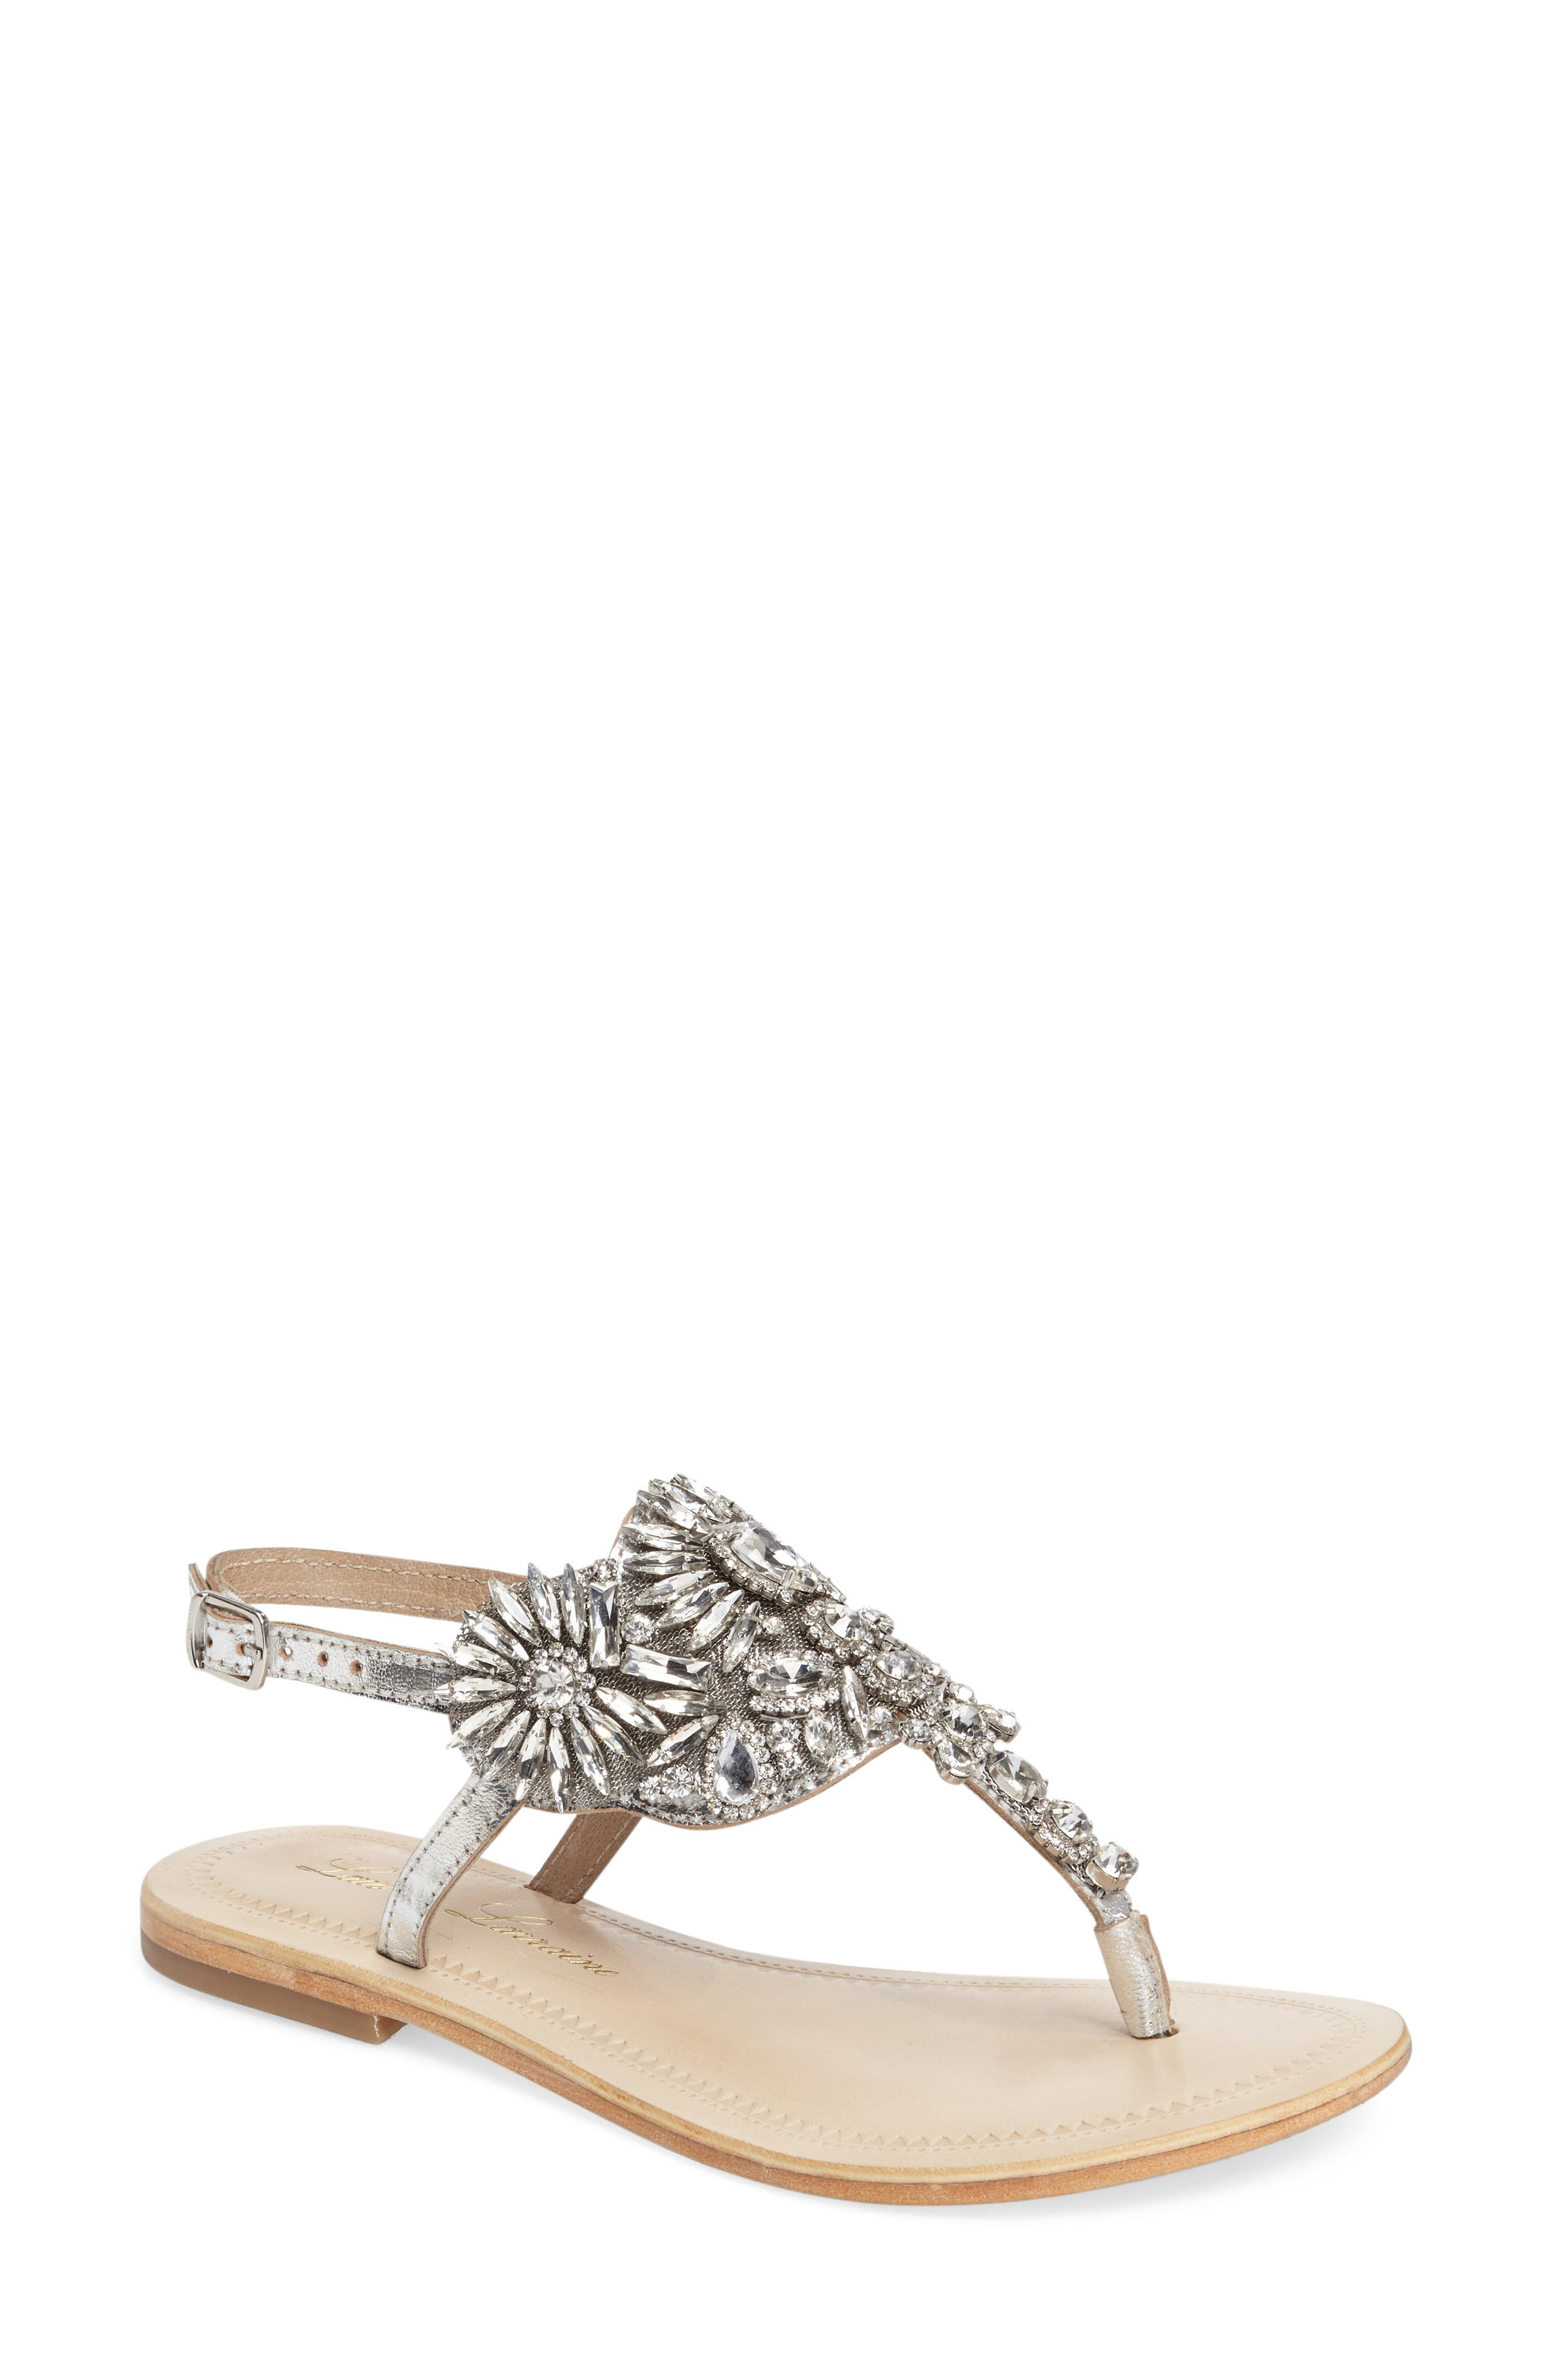 Vera Embellished Sandal,                             Main thumbnail 1, color,                             SILVER LEATHER